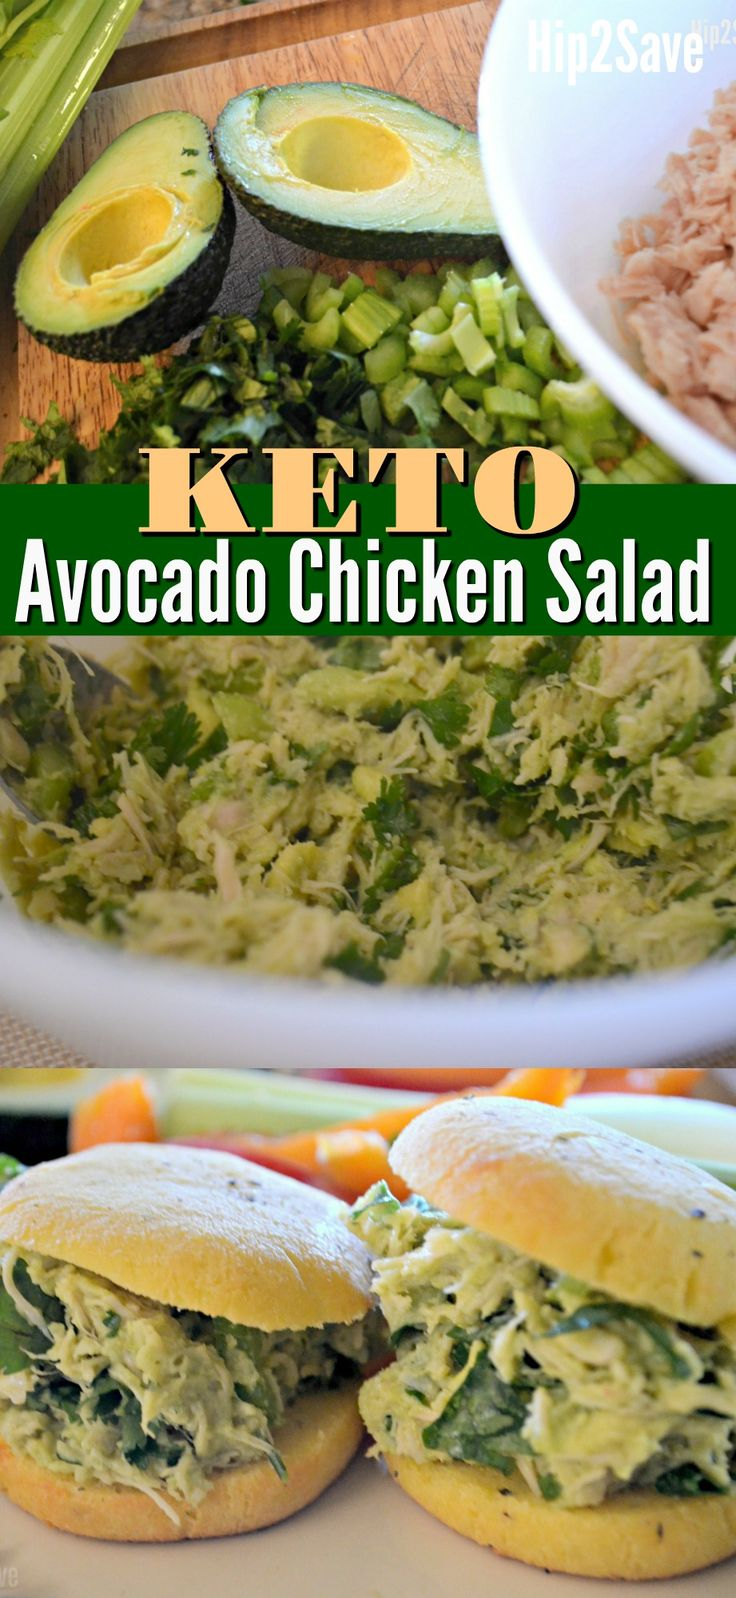 This Avocado Chicken Salad containes just four simple ingredients, and can be served on Keto Fathead rolls as a brilliant low carb sandwich!